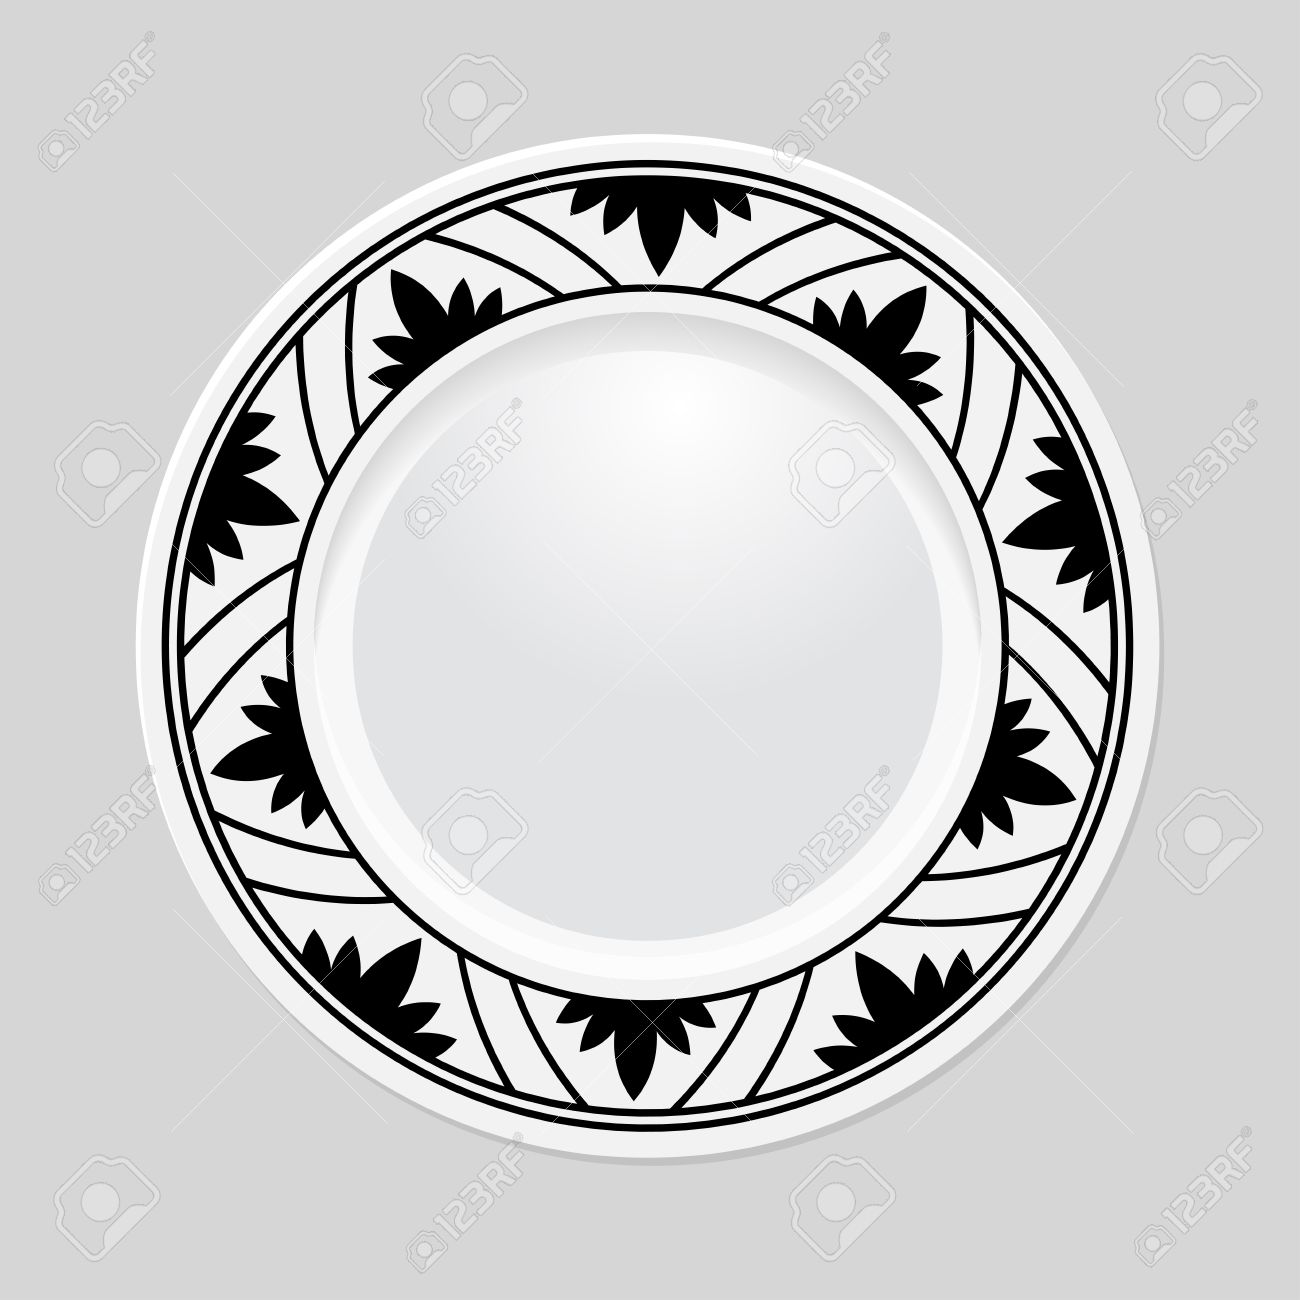 Decorative Plate With Patterned Border On Gray Background Top Royalty Free Cliparts Vectors And Stock Illustration Image 36647356